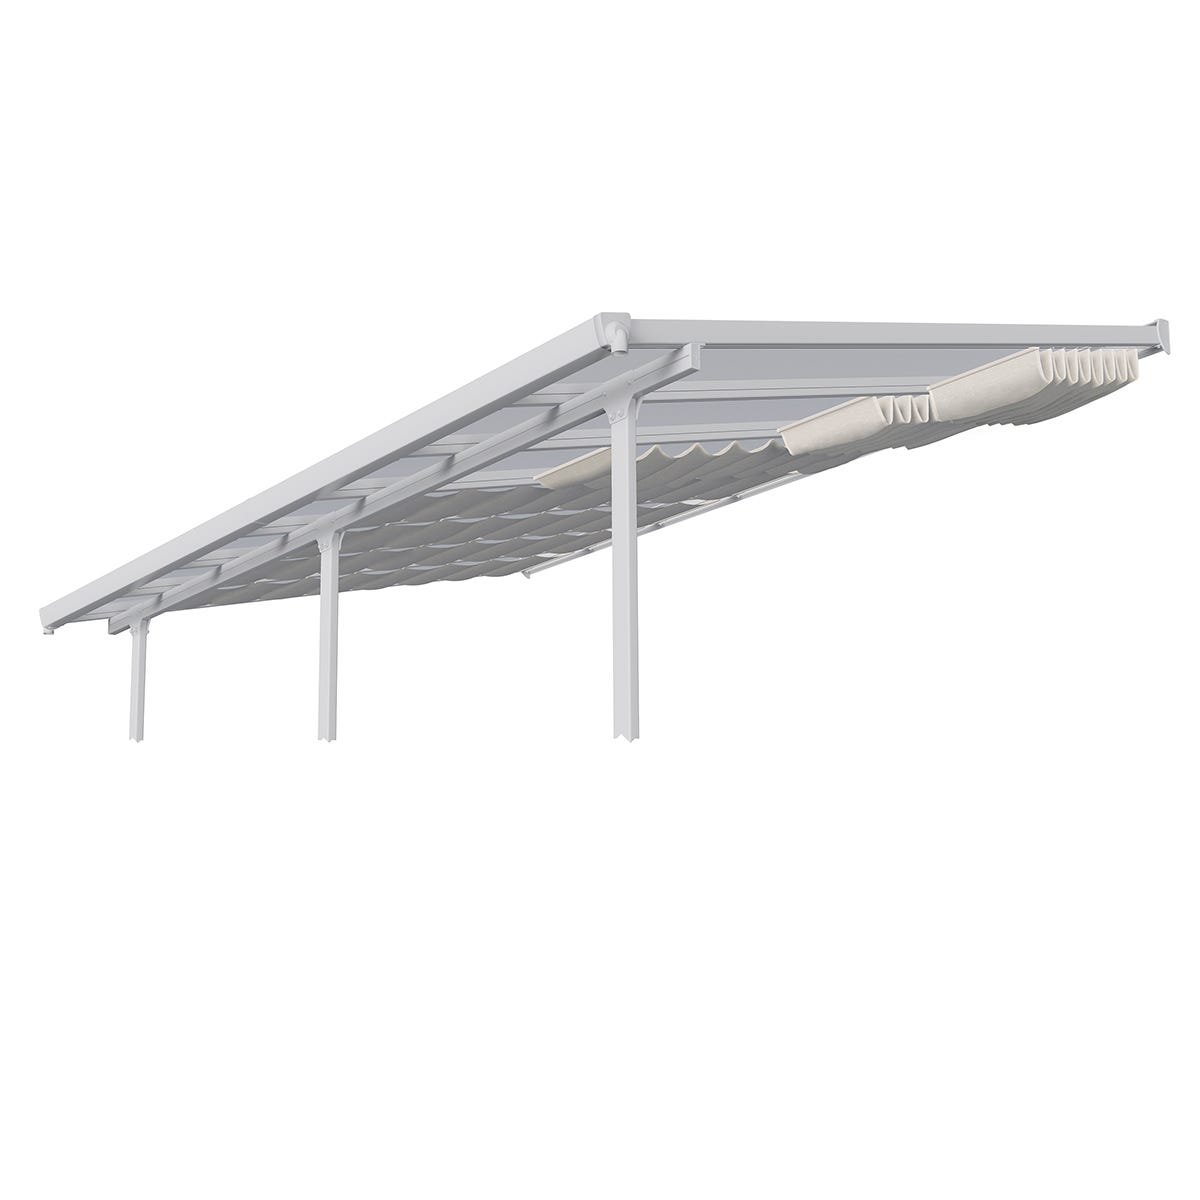 Palram - Canopia Patio Cover Roof Blinds 3m x 6.1m - White